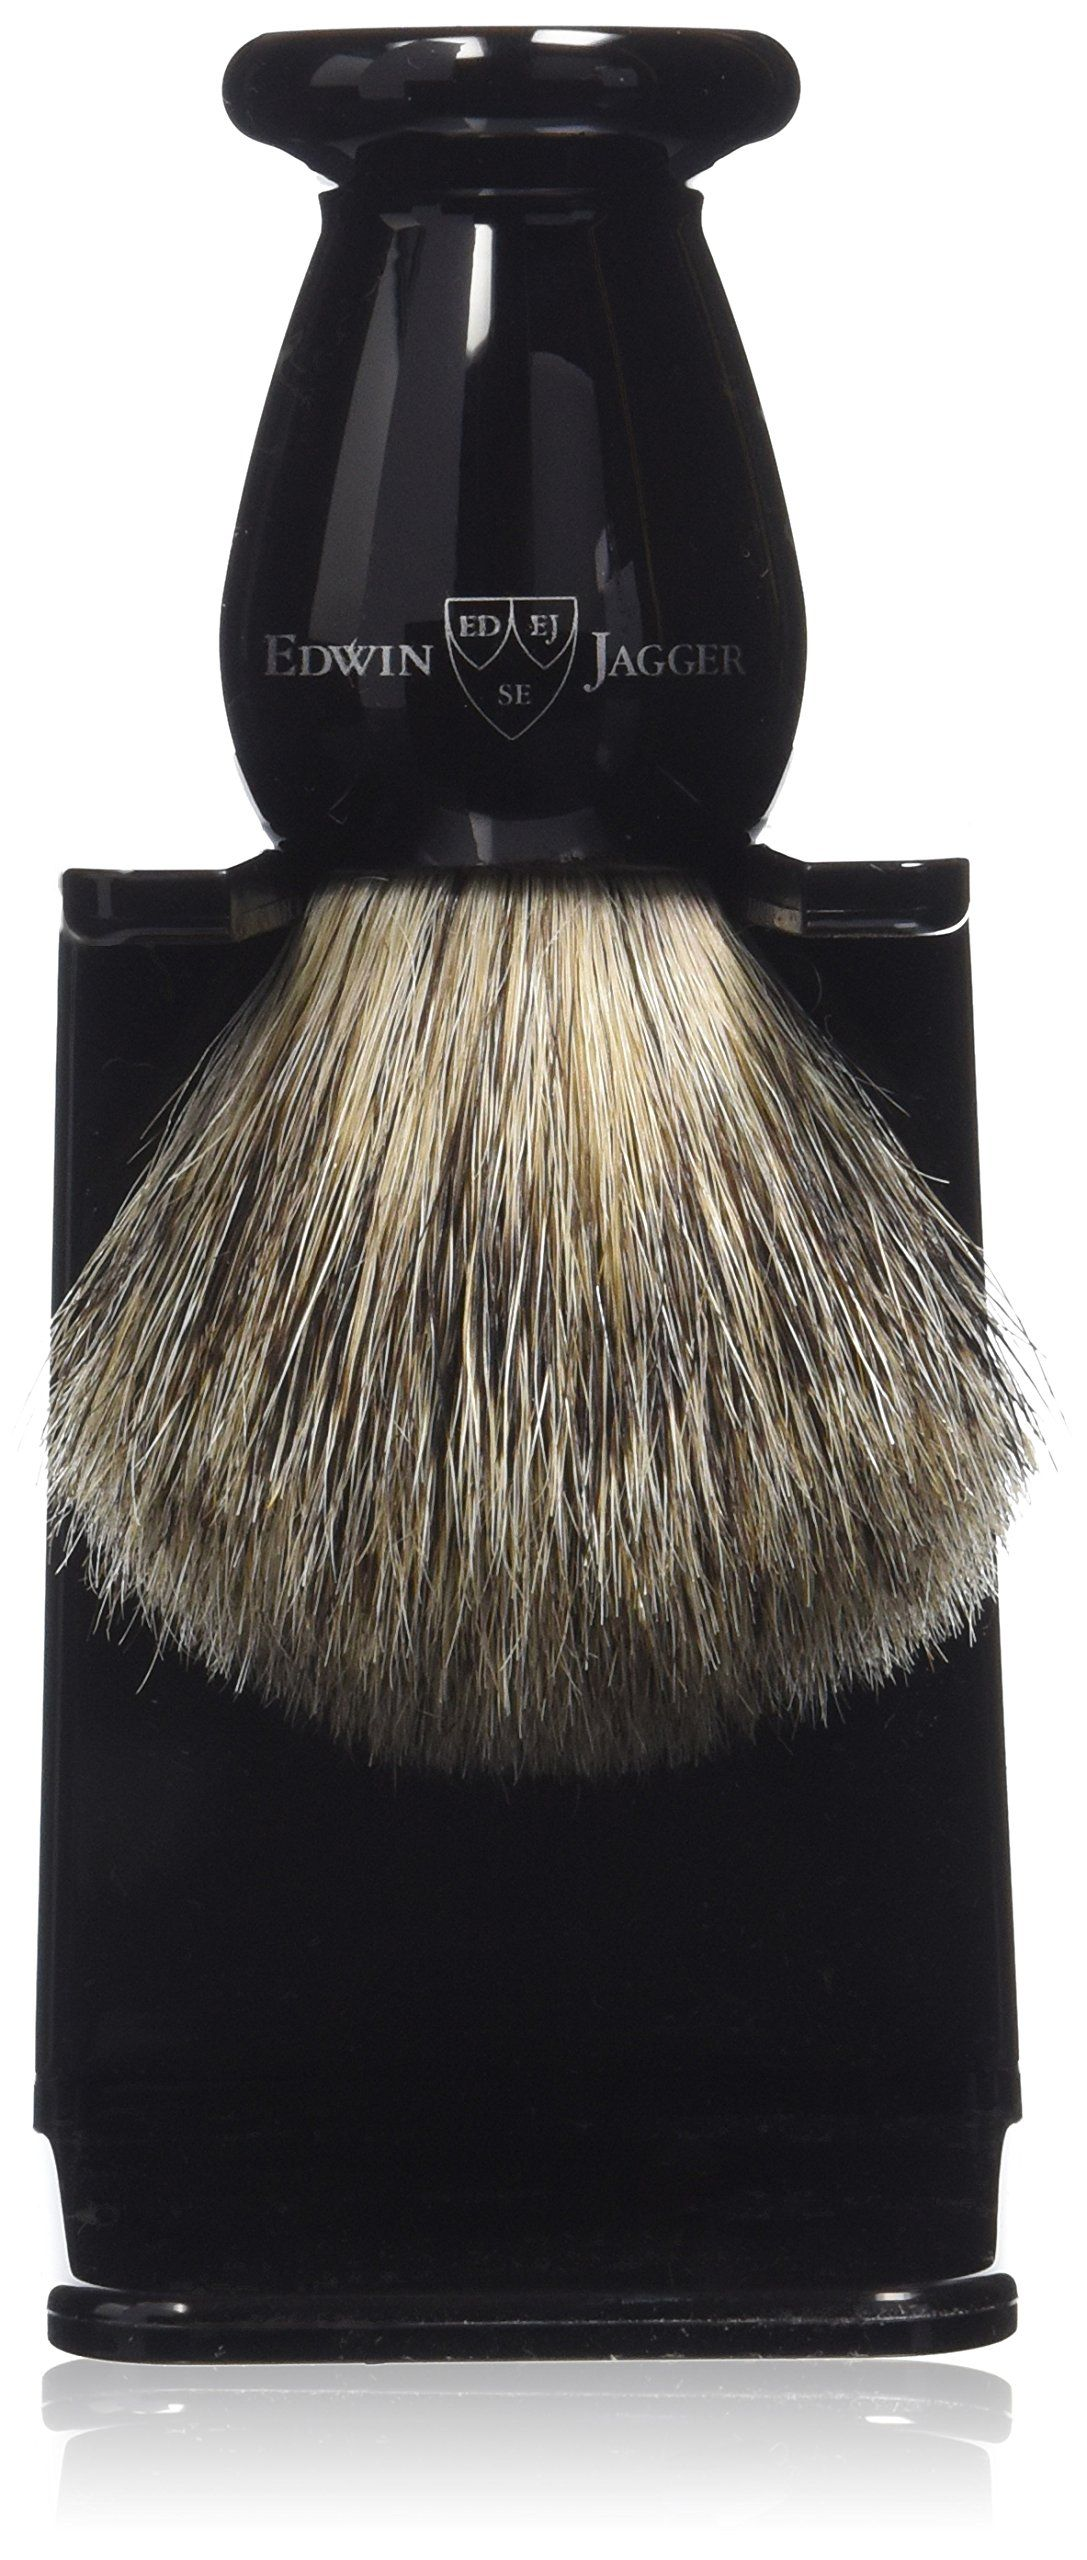 Photo of Edwin Jagger – Shaving brush with pure badger bristles, …